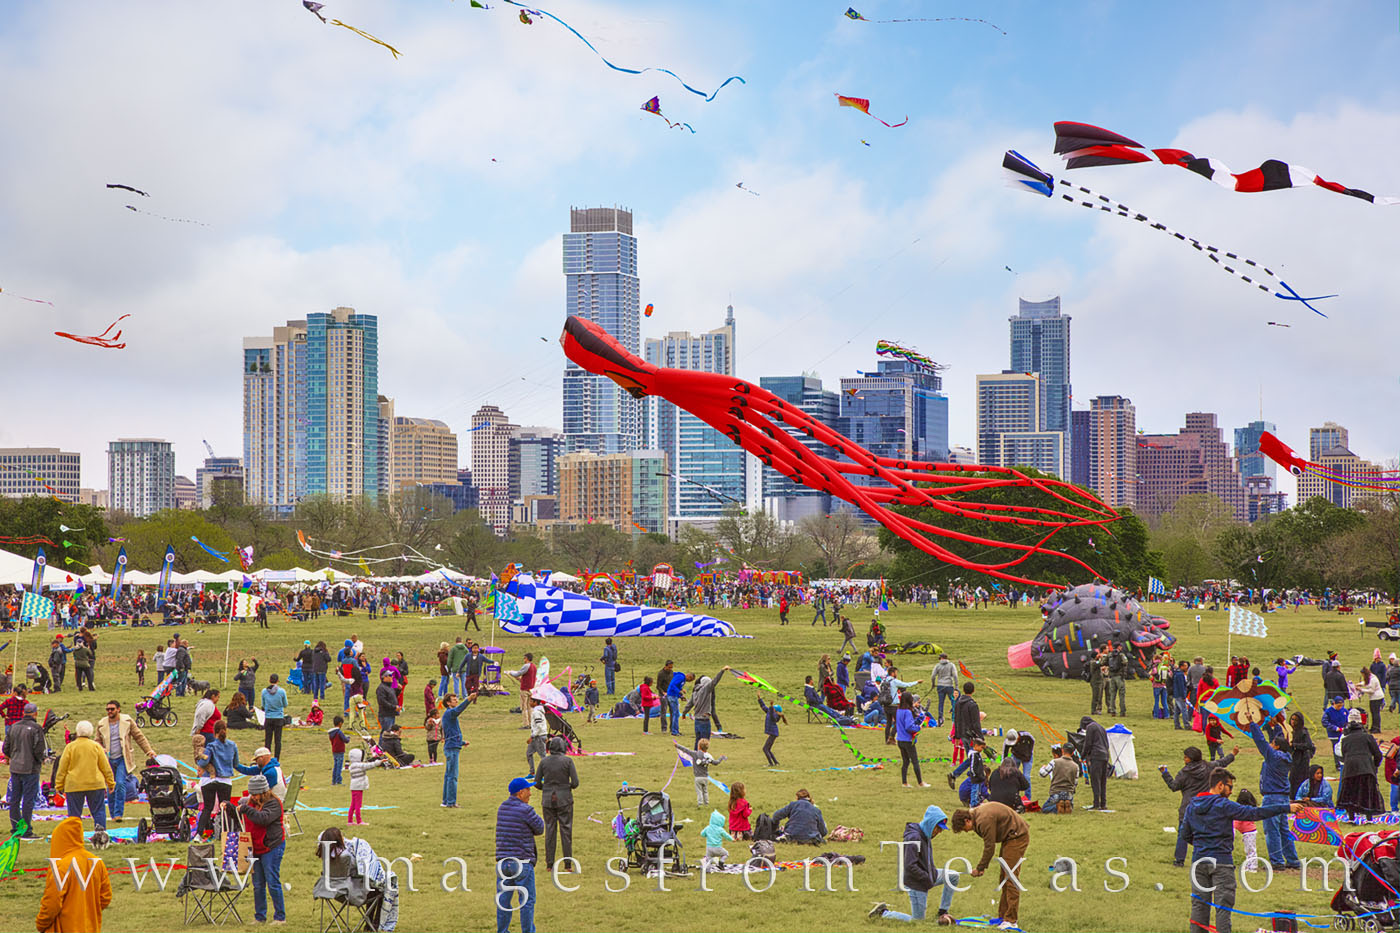 zilker park, kite festival, austin texas, downtown austin, skyline, march, spring, photo